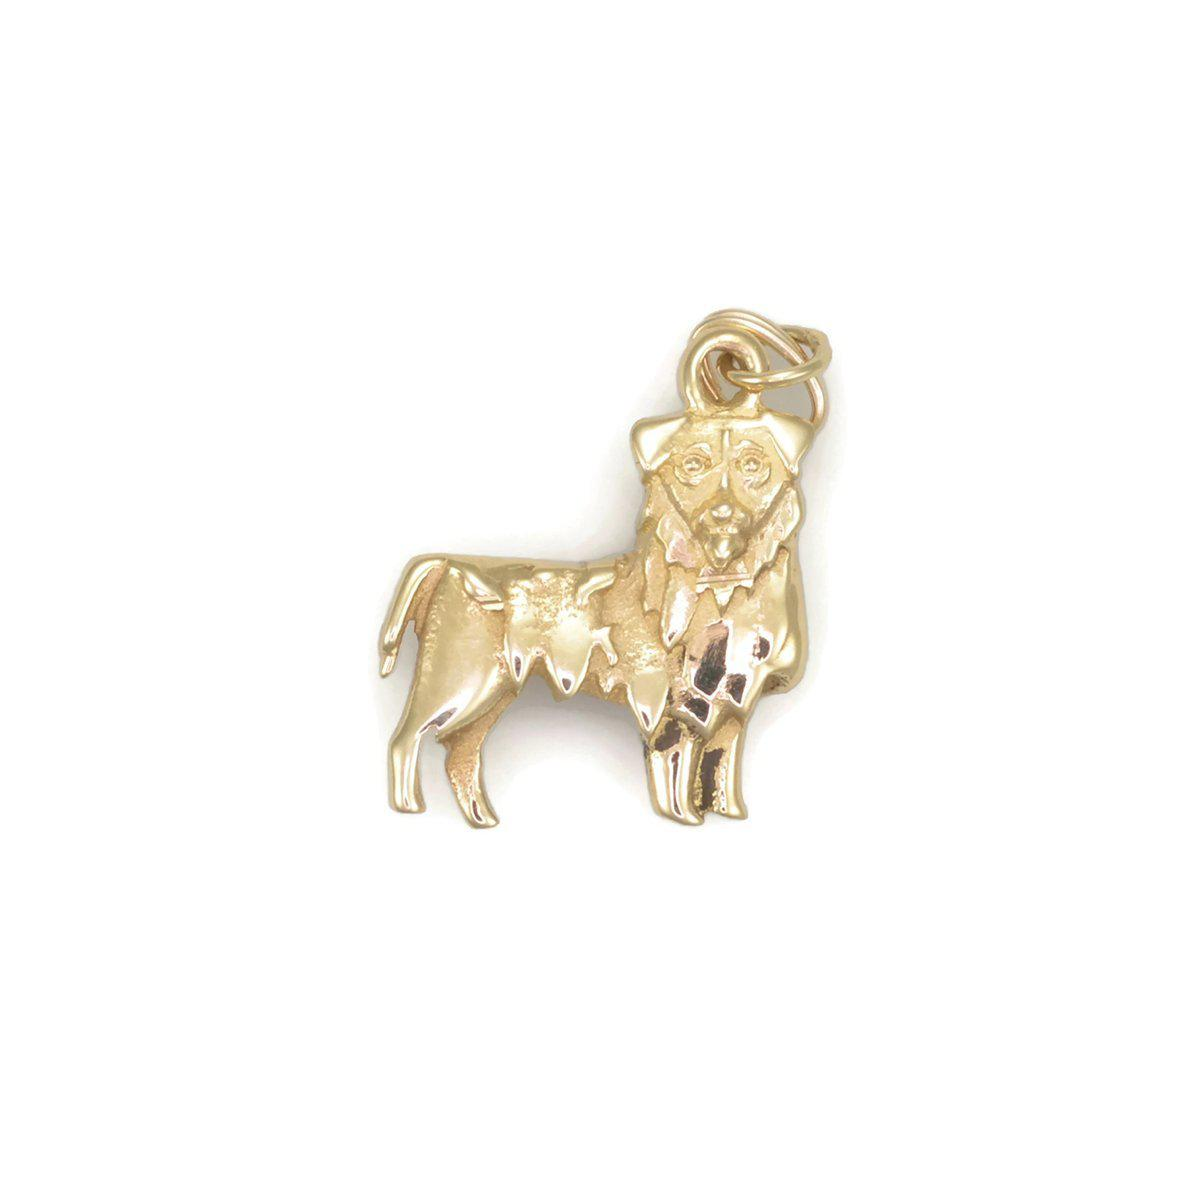 Donna Pizarro Designs 14kt Yellow Gold Golden Retriever Charm 1yLh3lZRyX